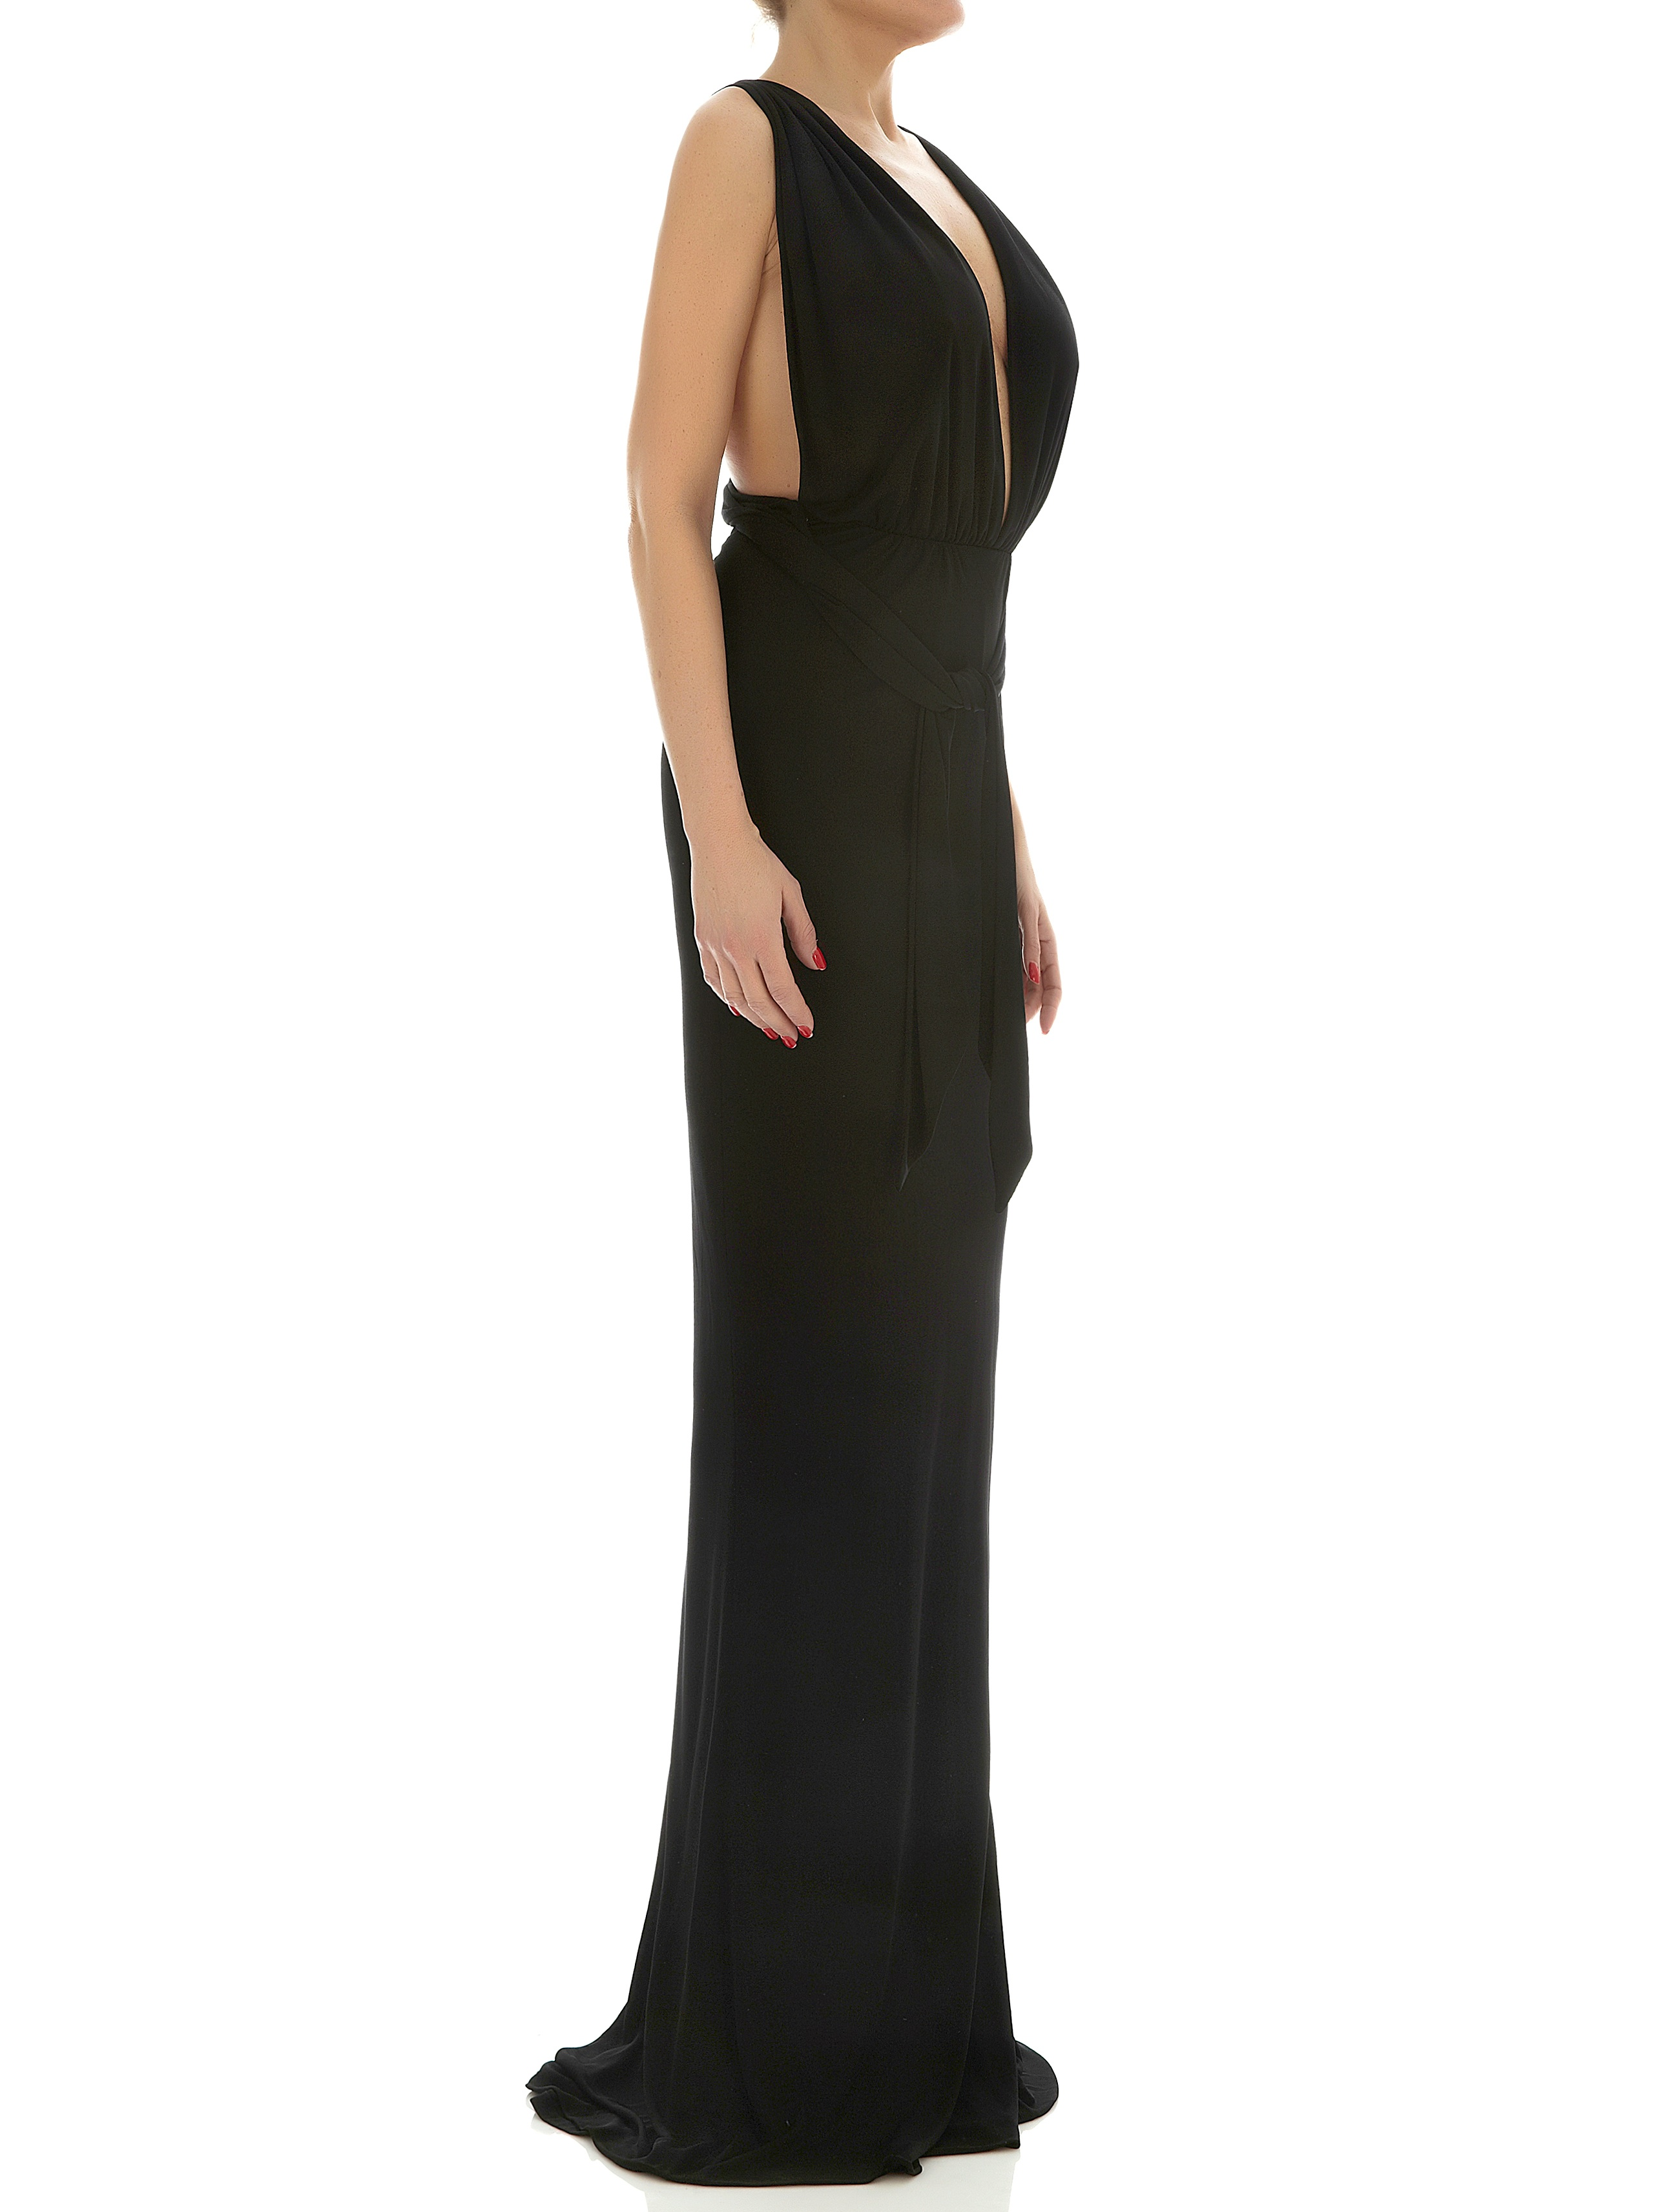 Azarro evening long dress, από 4.350 ευρώ, στο 1vintagedress.com, 1.600 ευρώ